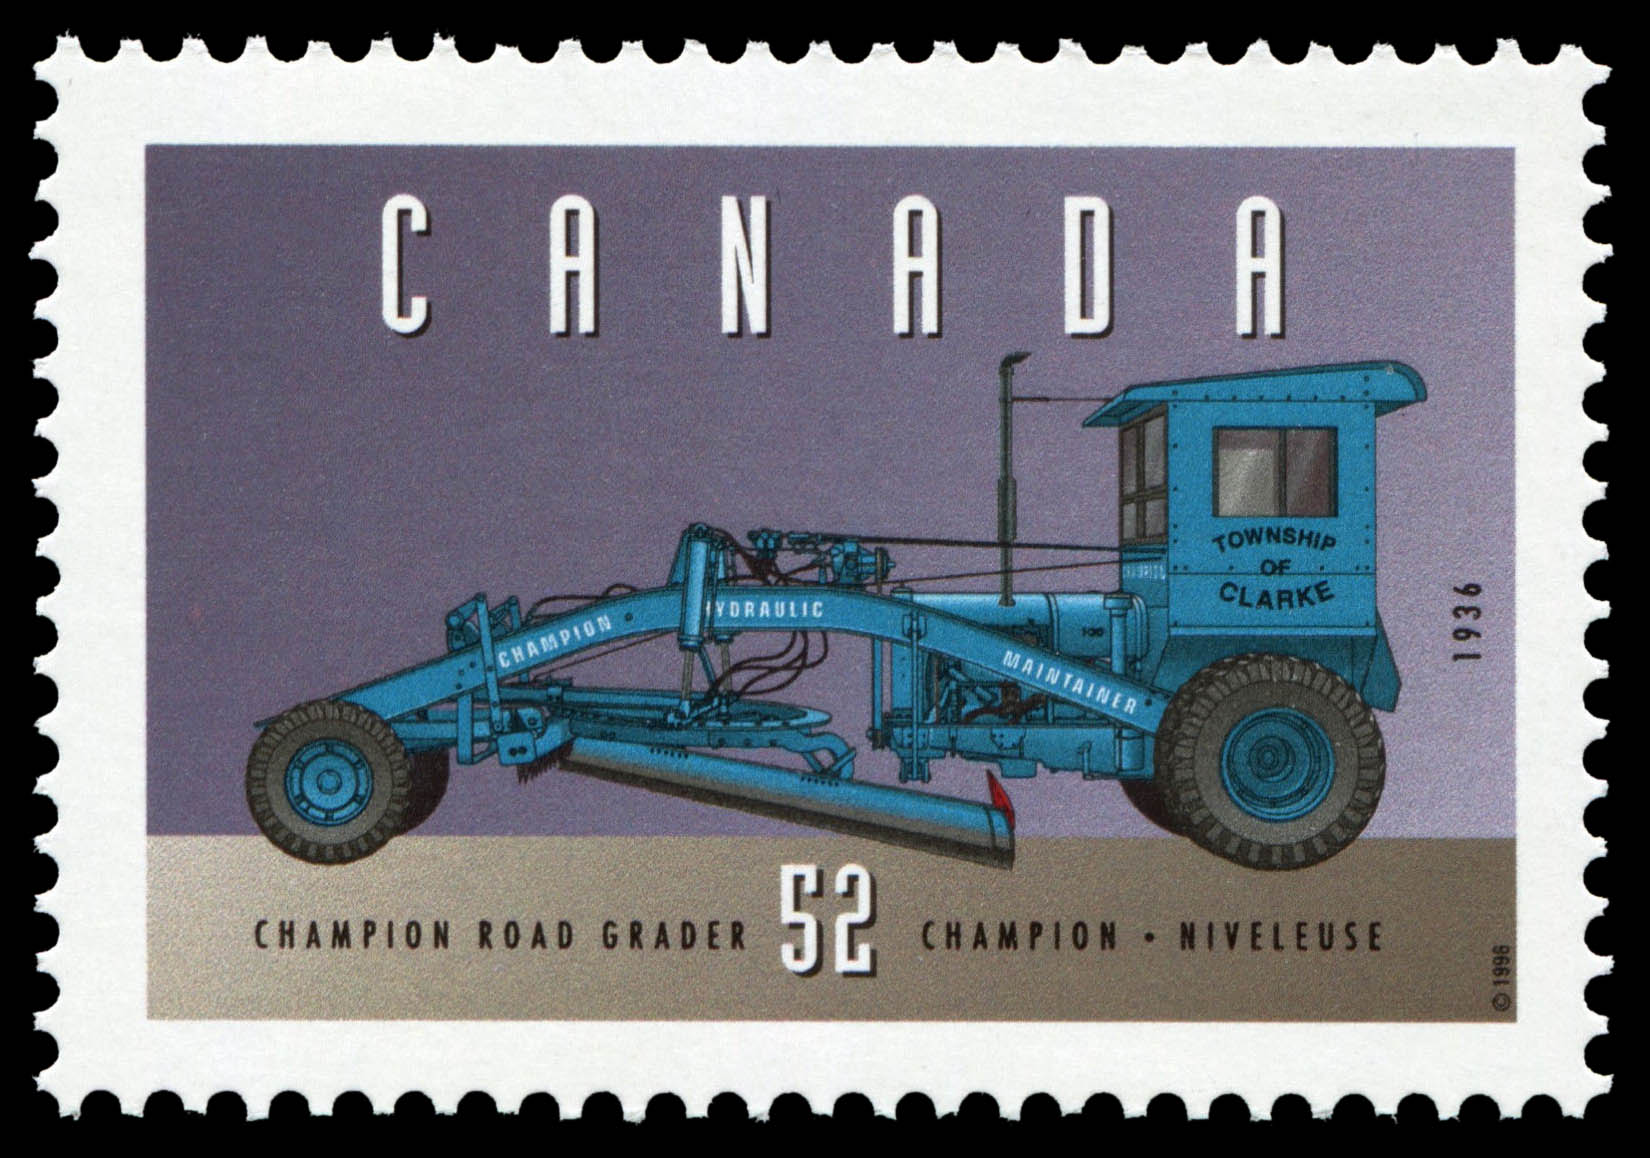 Champion Road Grader, 1936 Canada Postage Stamp | Historic Land Vehicles, Industrial and Commercial Vehicles